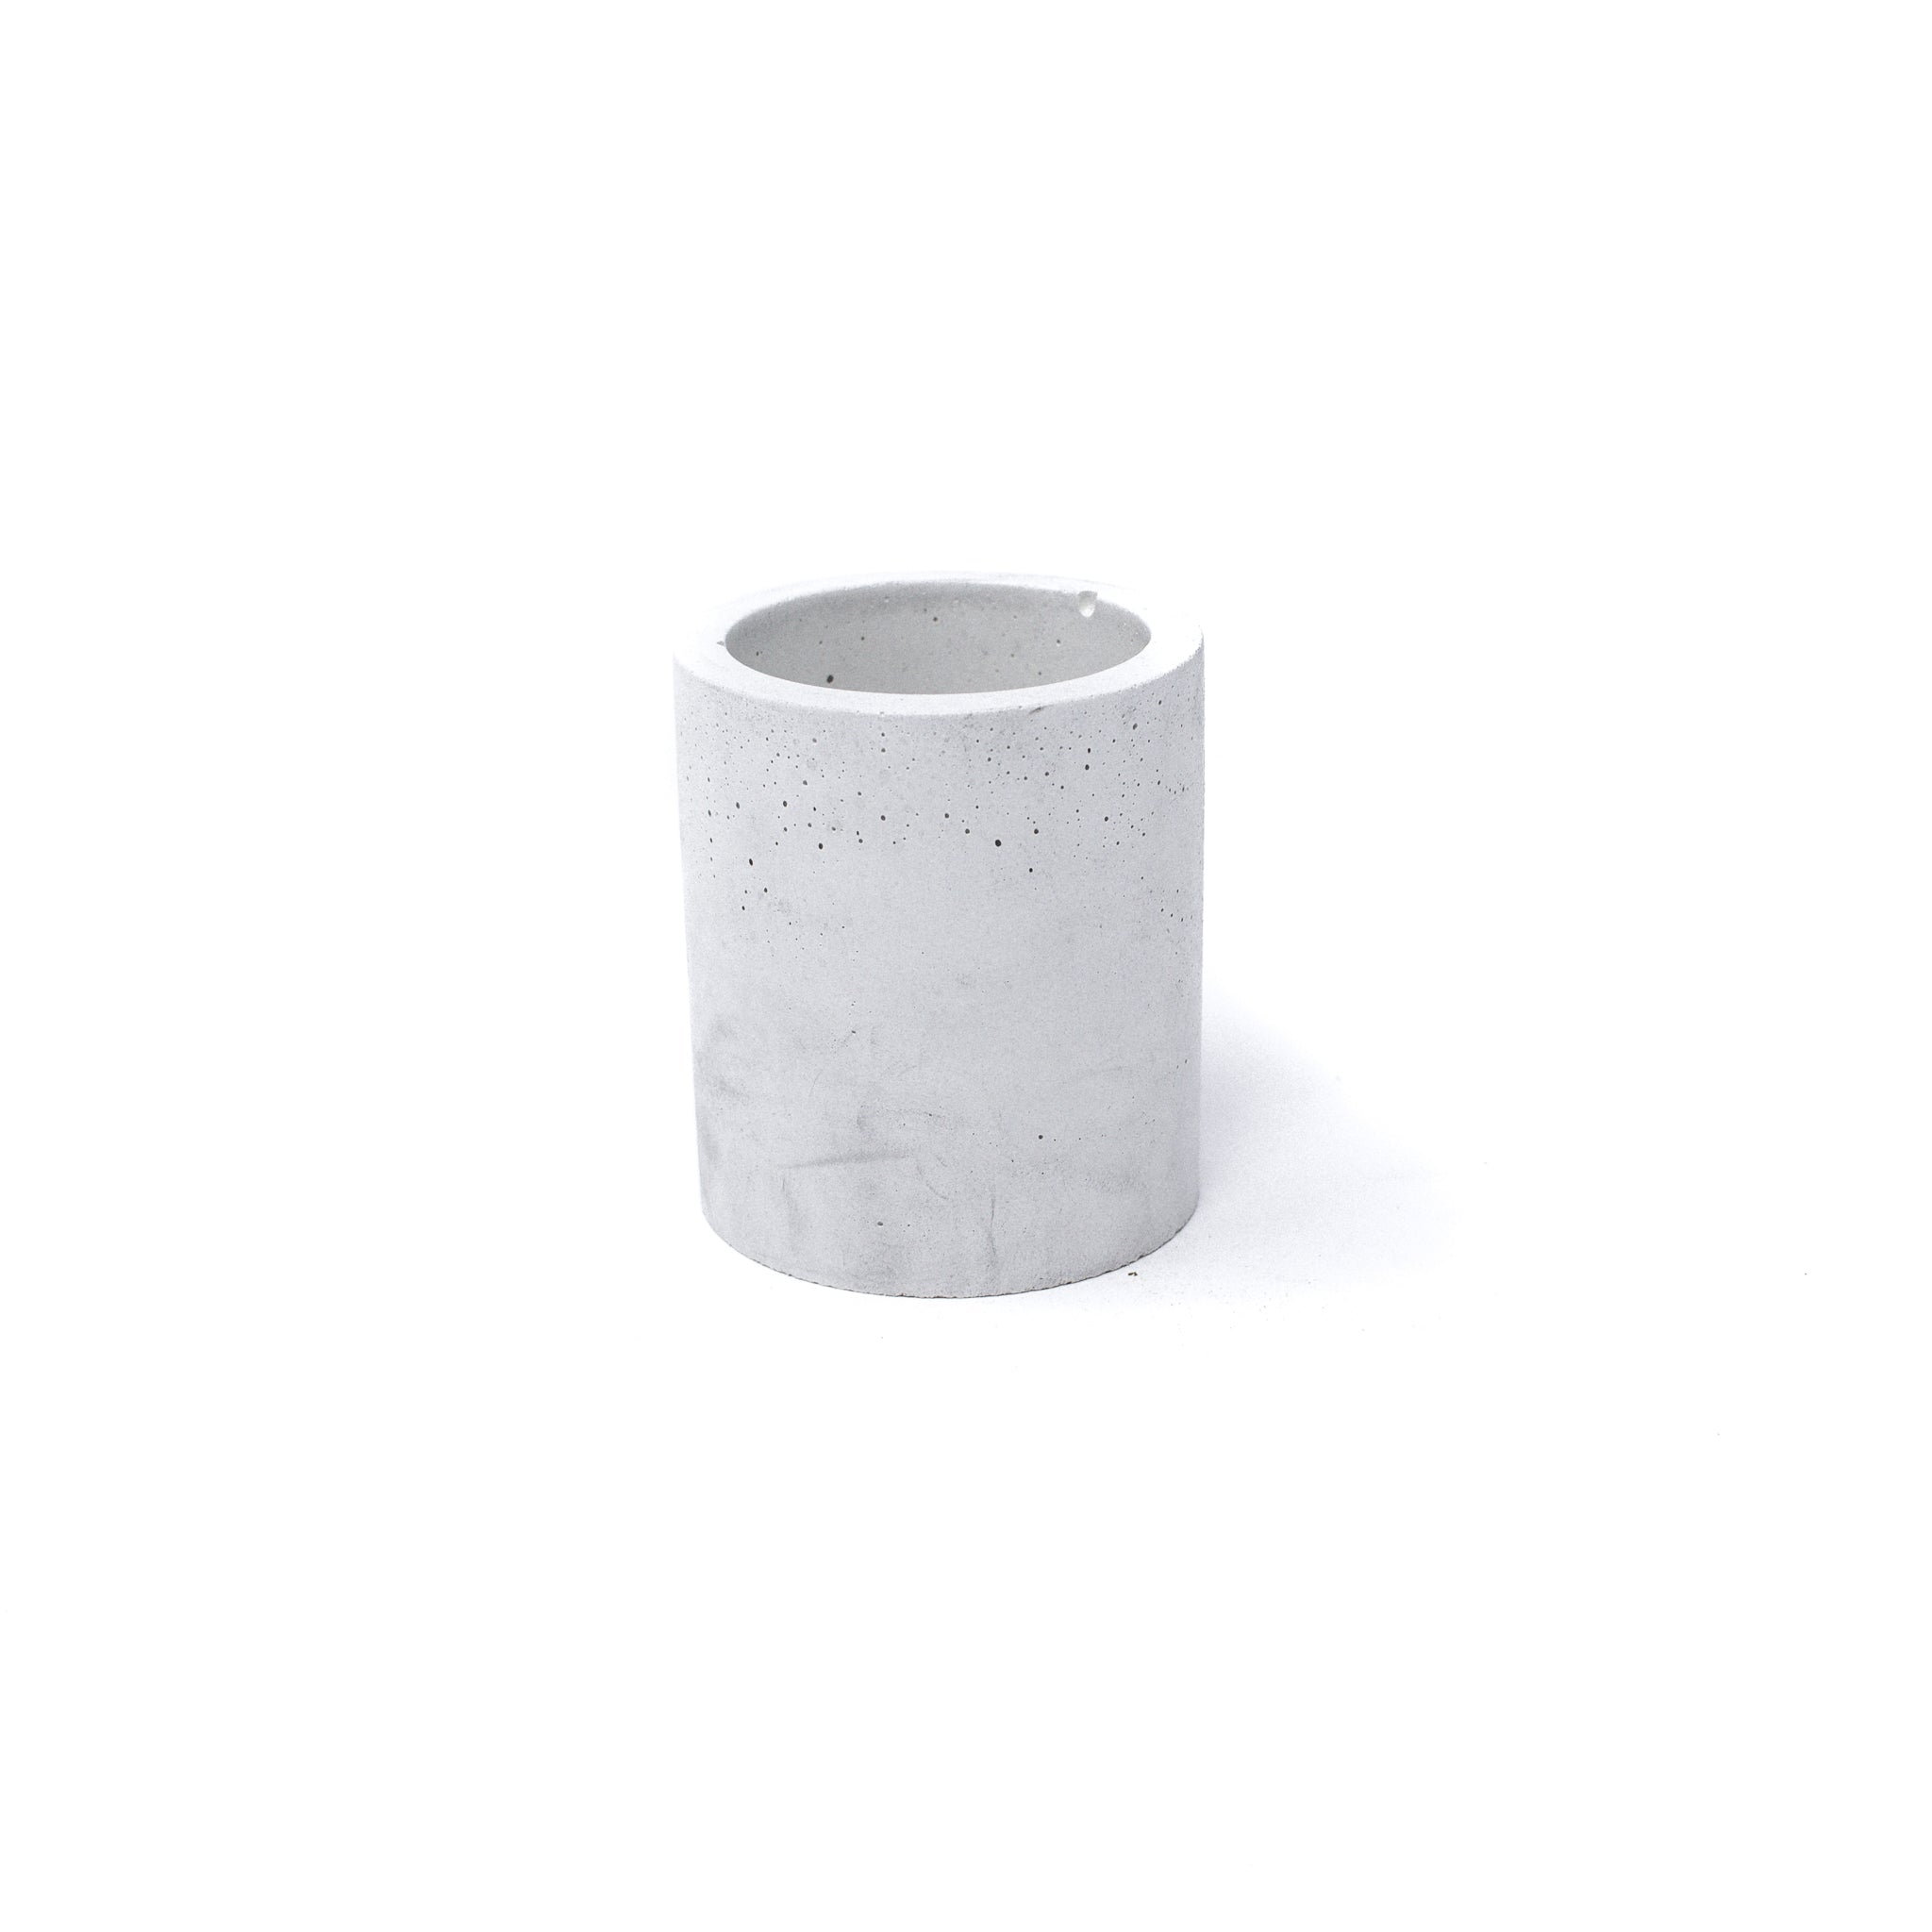 Concrete Planter: Tall Cylinder (Light Gray)